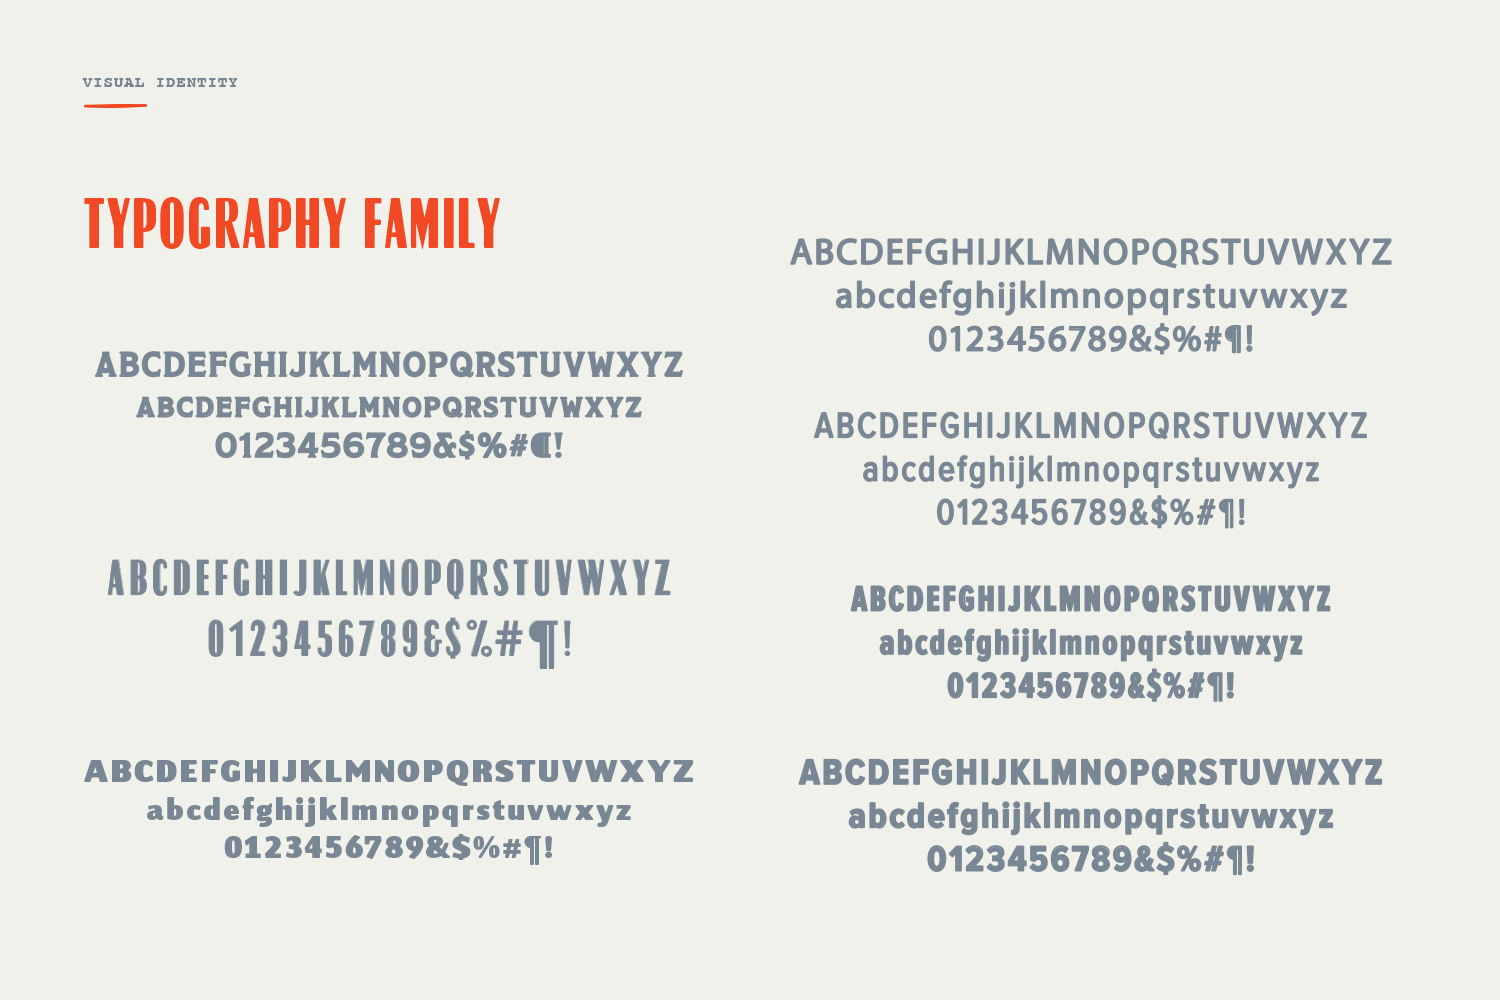 kosmosq_visual identity_typography family.png